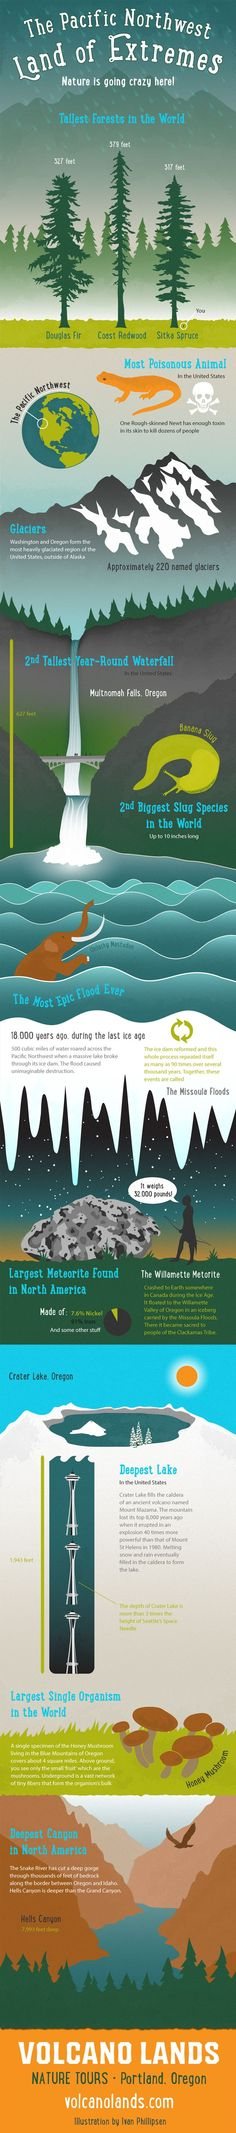 Infographic - Extremes of Nature in the Pacific Northwest: http://www.volcanolands.com/infographic-the-pacific-northwest-is-a-land-of-extremes/